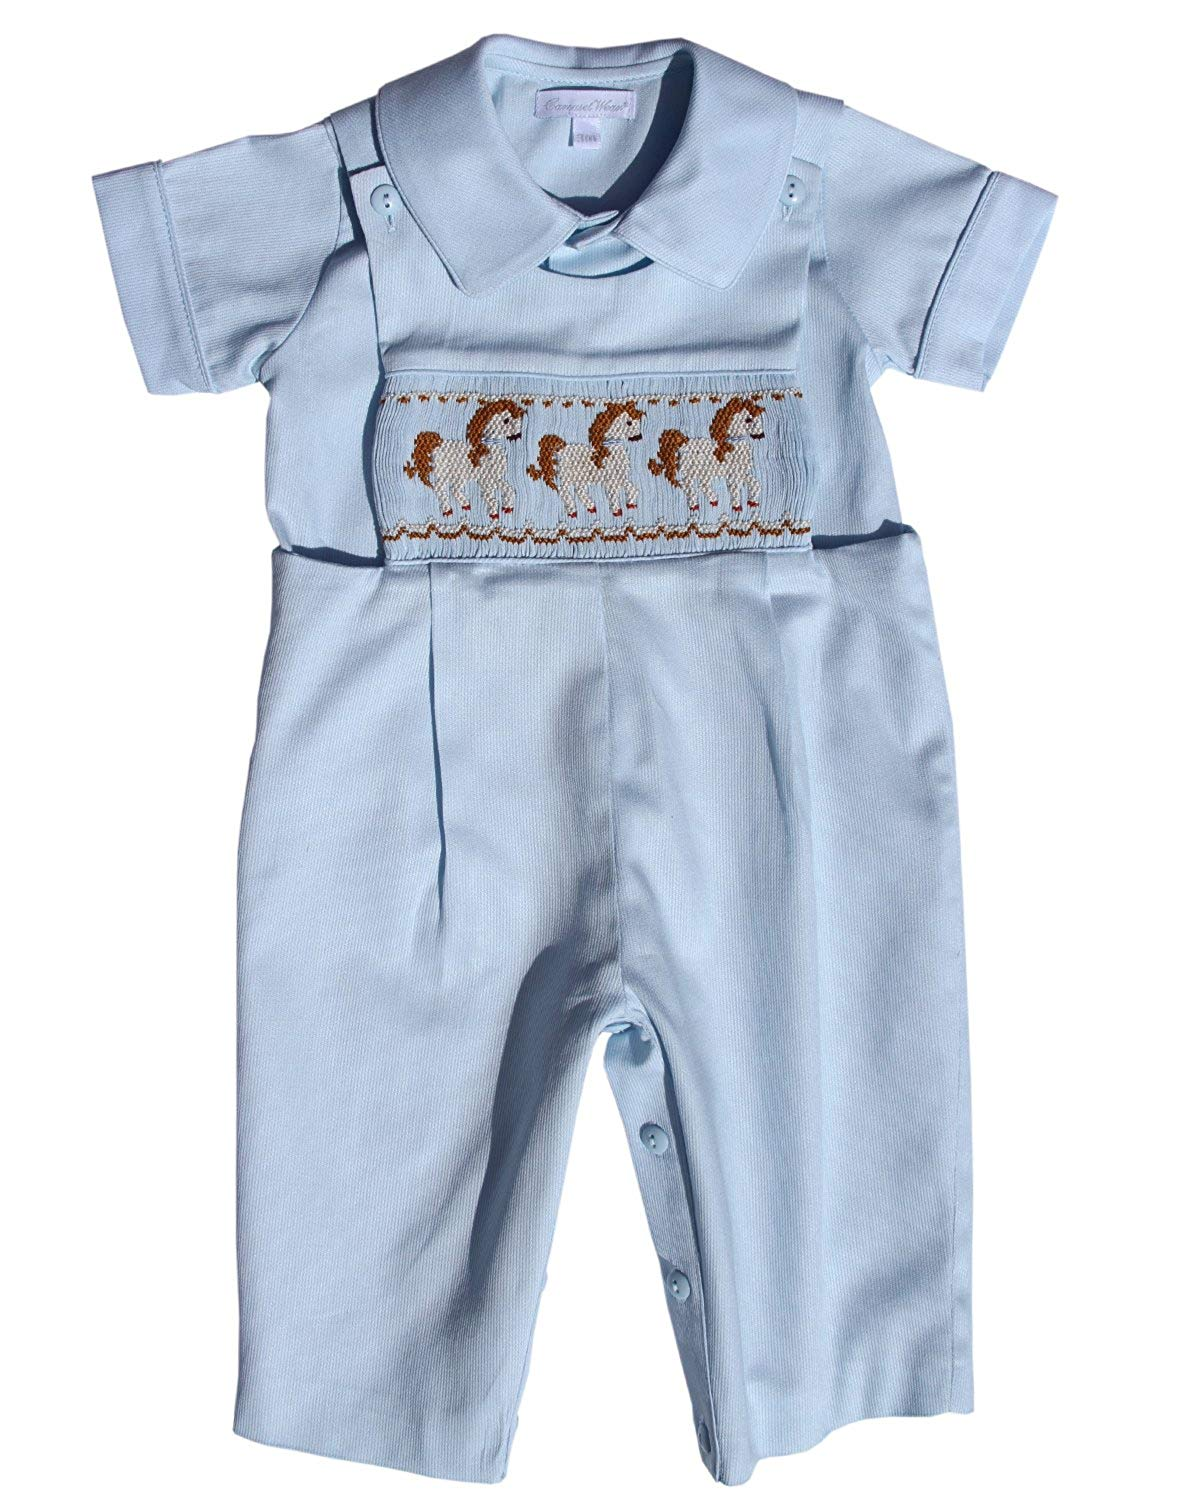 2b50570781ef Carouselwear Baby Boy Blue Longall Overalls with Smocked Carousel Horses